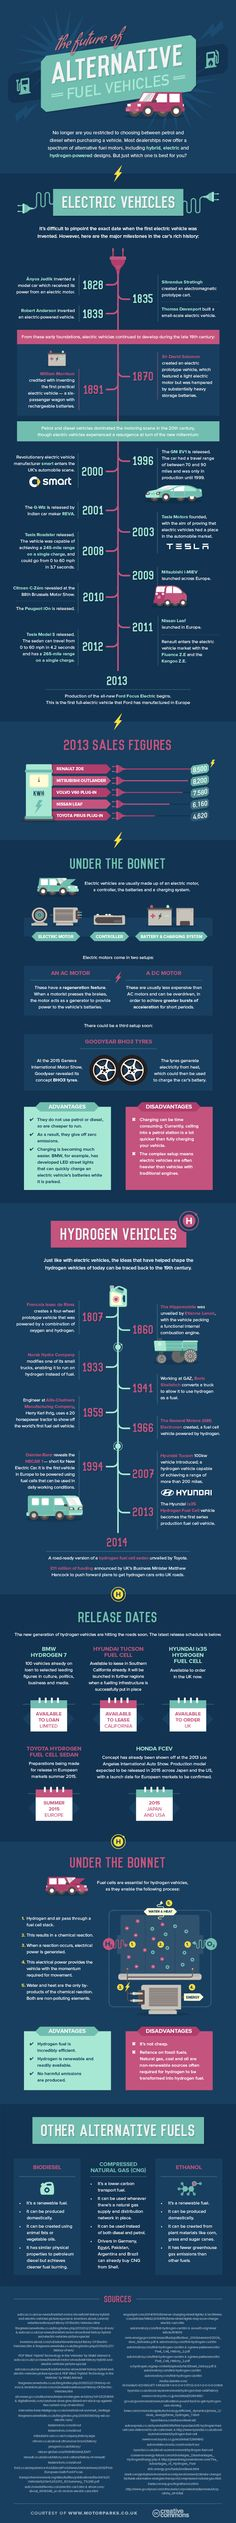 The Future of Alternative Fuel Vehicles #infographic #Transportation #Cars